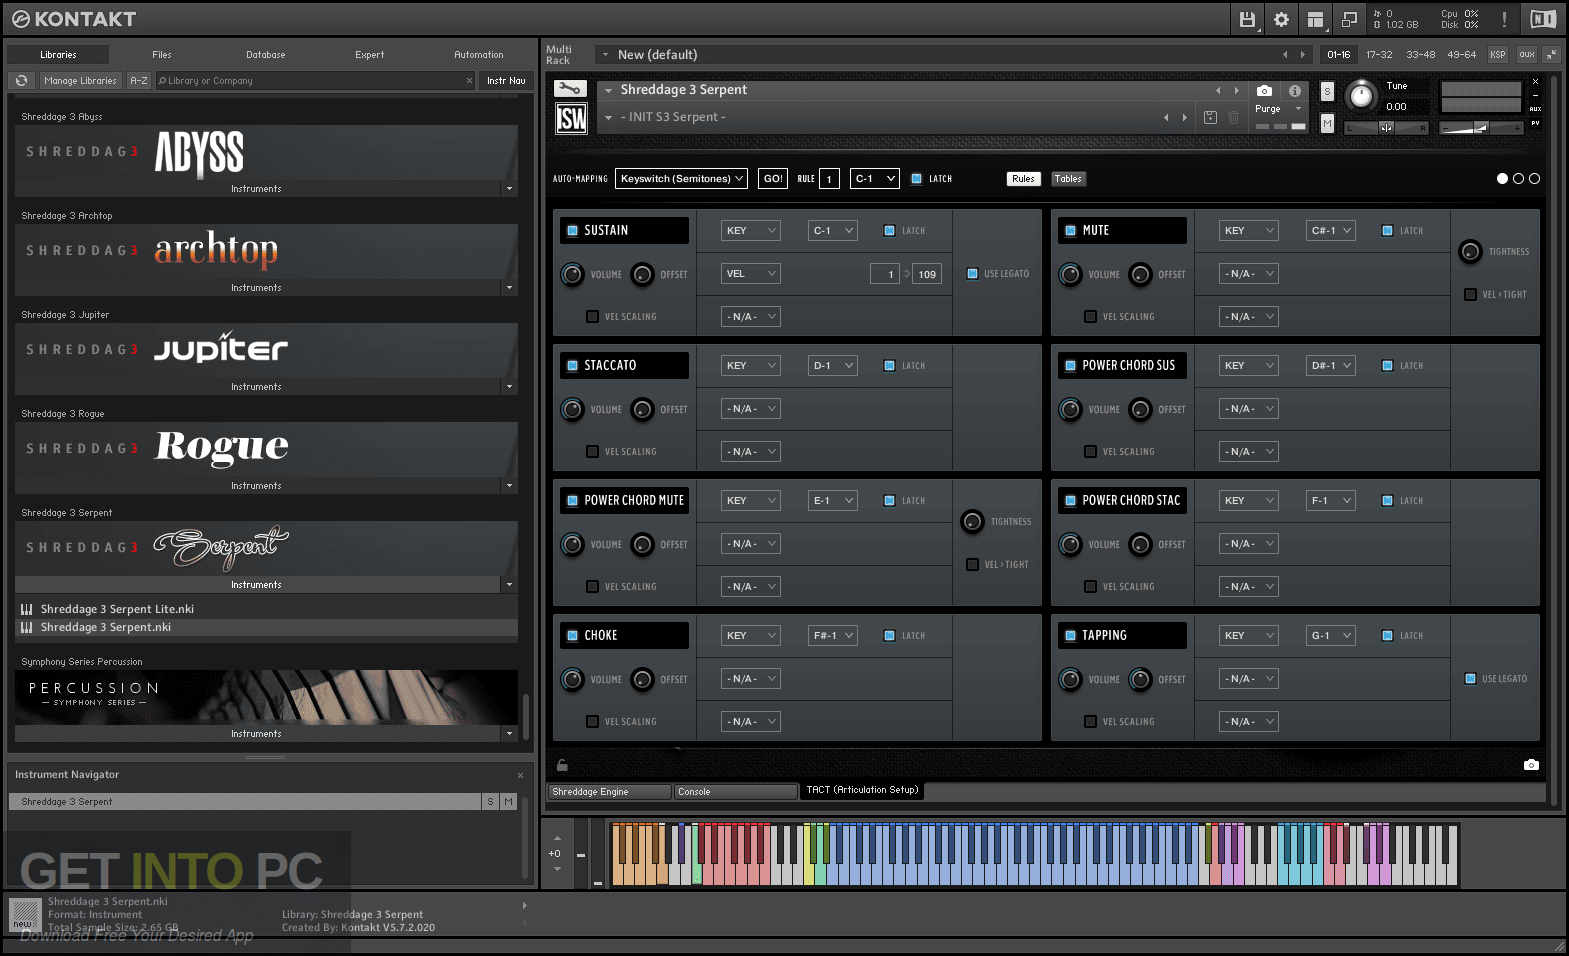 Vir2 Instruments - VITAL SERIES: MALLETS SUMMARY (KONTAKT) Offline Installer Download